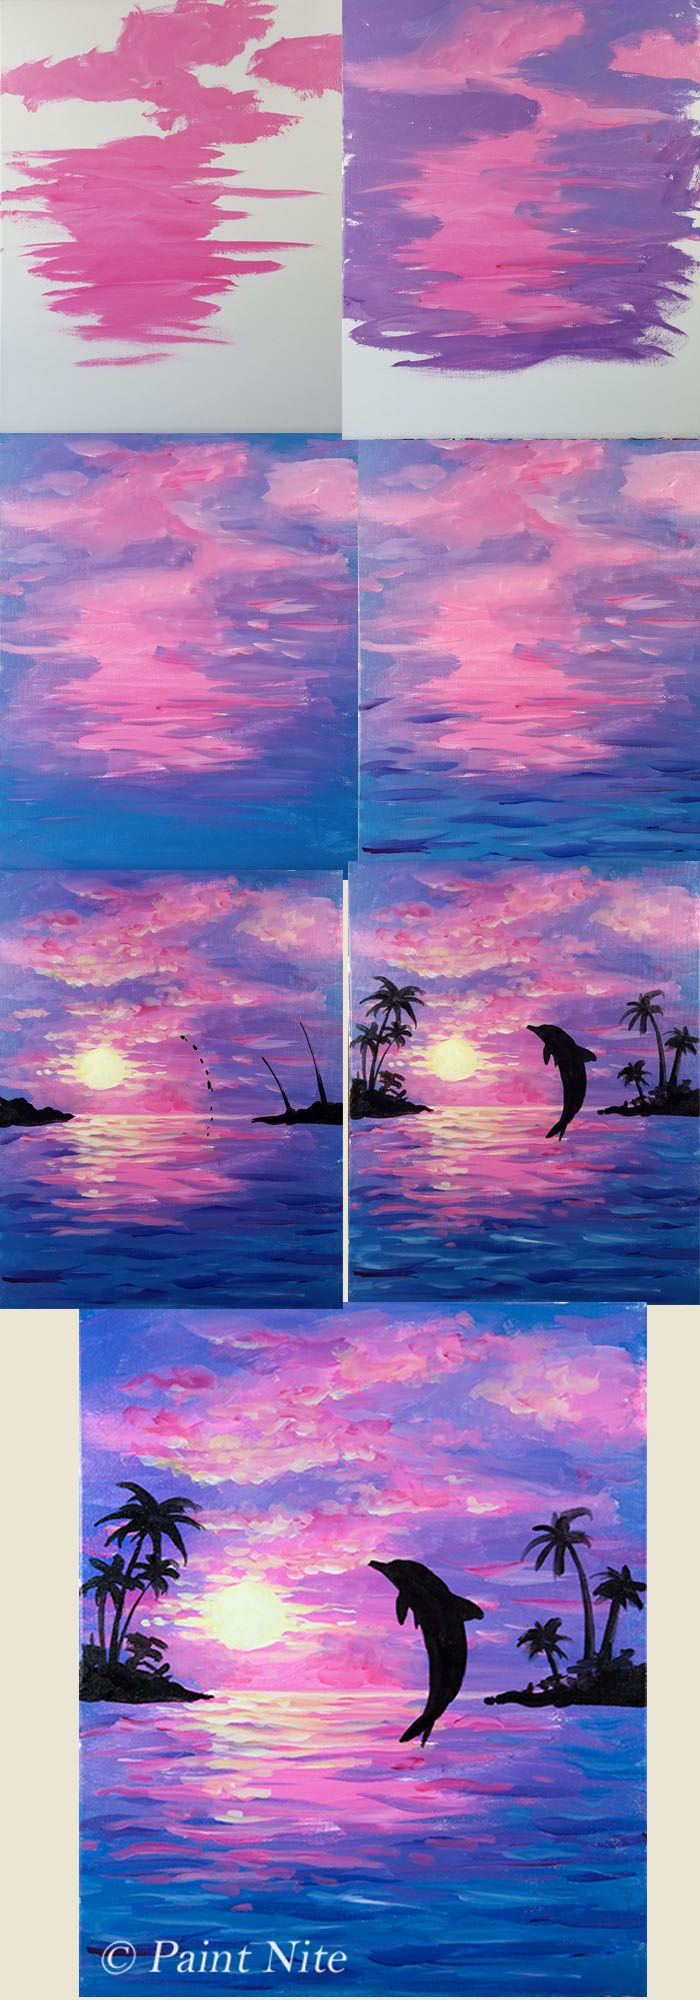 Best 25 watercolor sunset ideas on pinterest drawing for Watercolor easy ideas